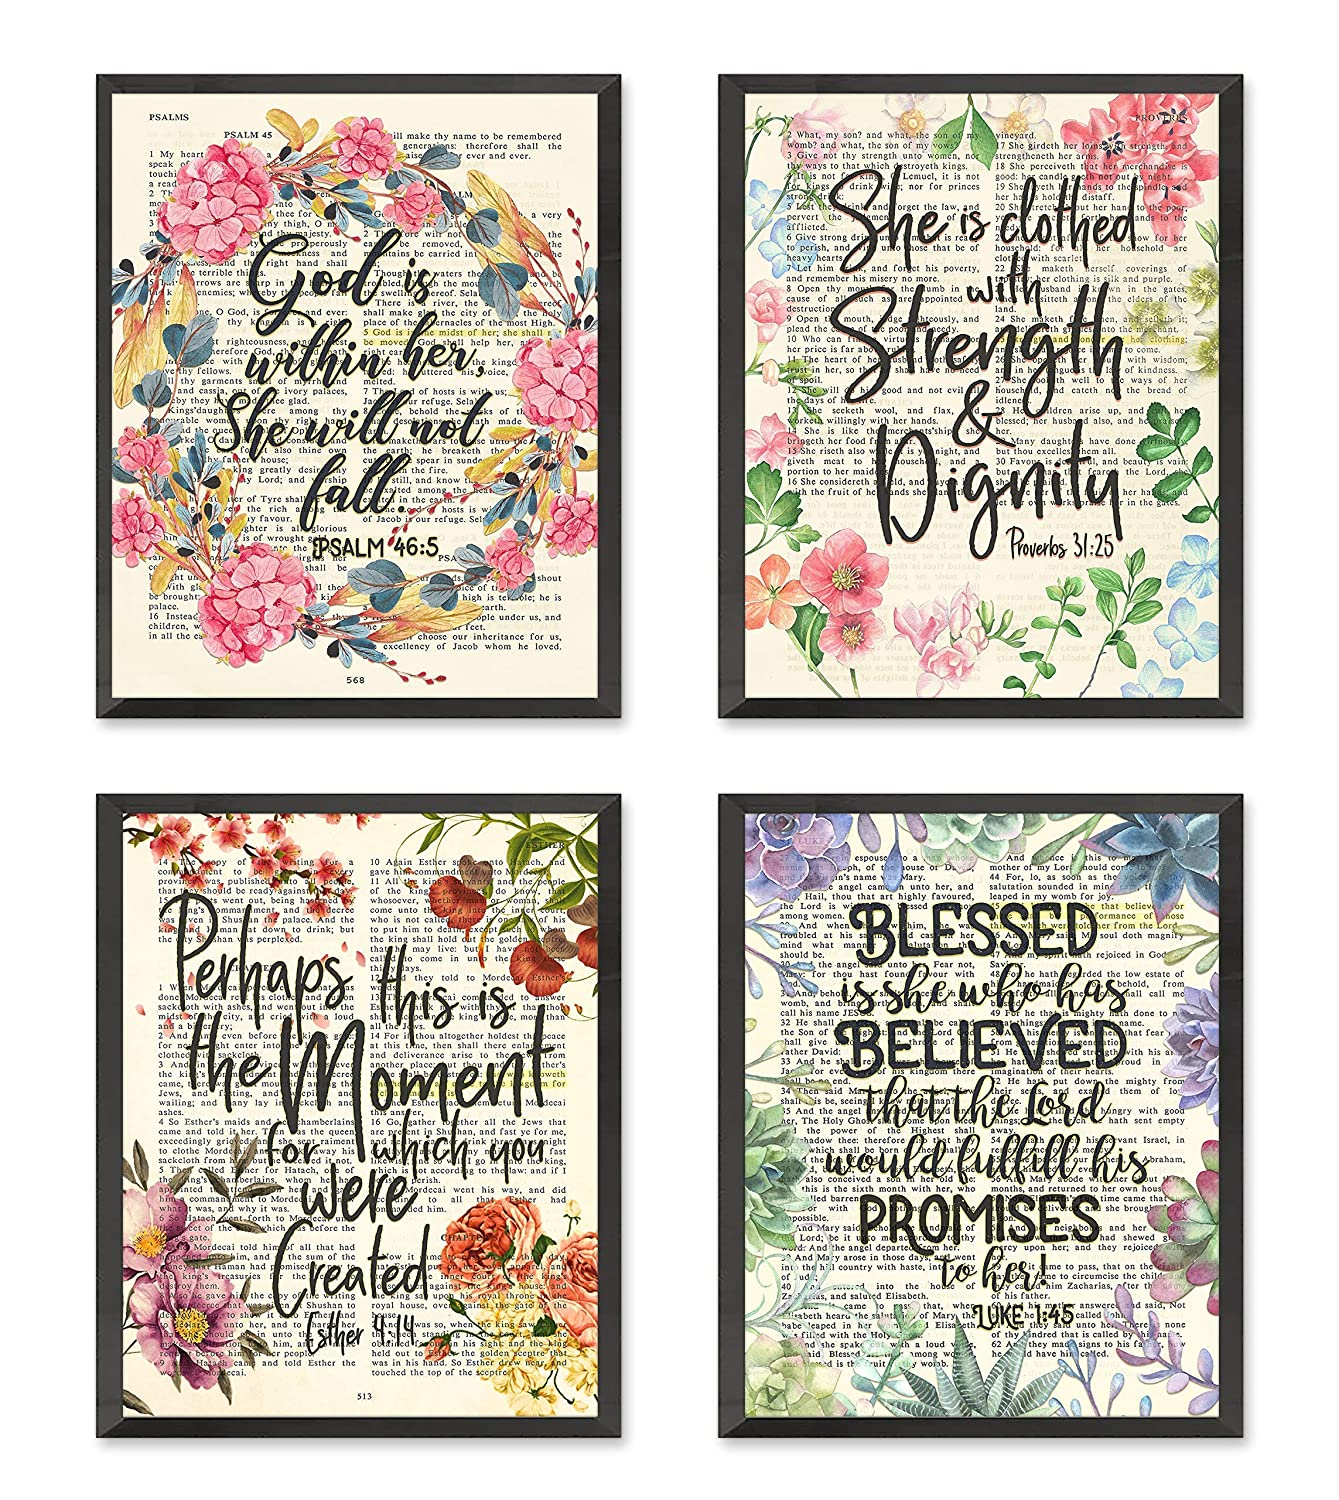 Psalm 46:5, Proverbs 31:25, Esther 4:14, Luke 1:45 Christian Art Prints for Her, Set of 4, Unframed, Bible Verse Scripture Wall Decor Poster, 8x10 Inches